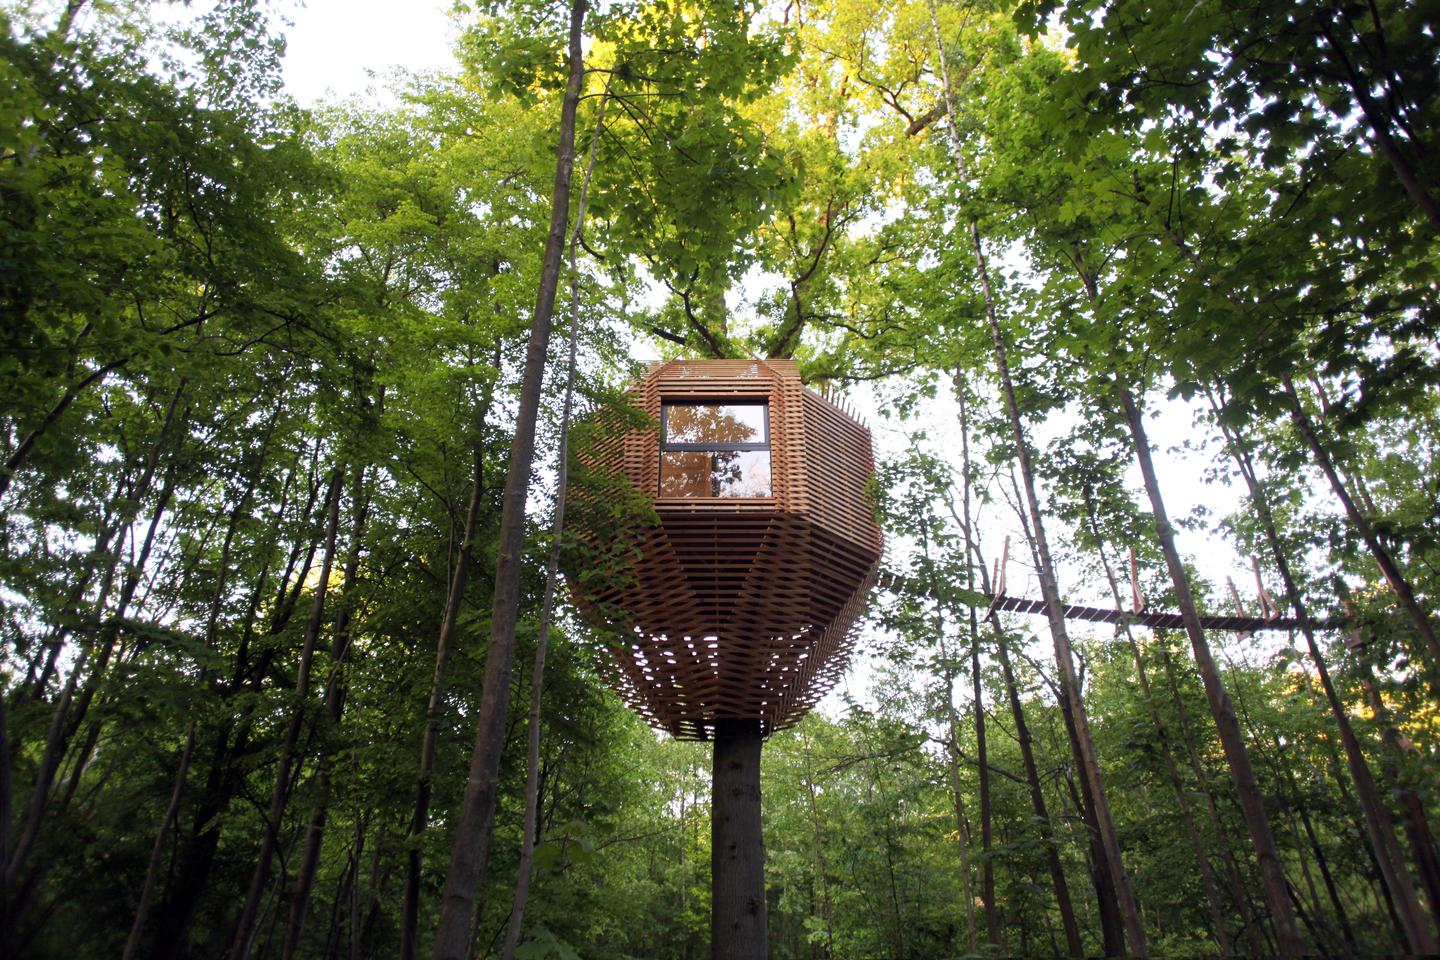 Paris based architectural and design studio Atelier LAVIT has recently completed its stunning Origin Treehouse, located in Raray, France